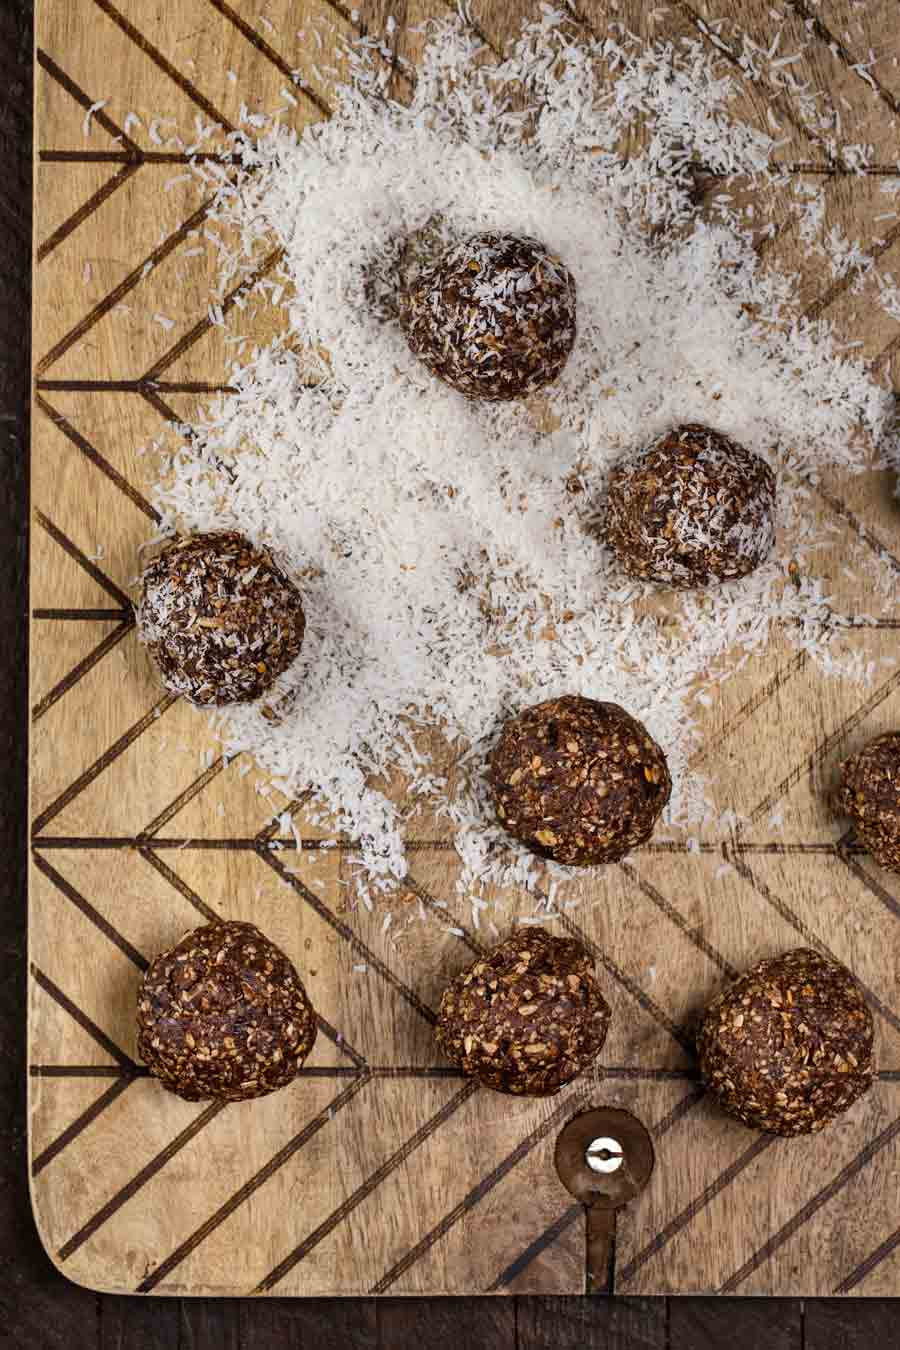 Chocolate Coconut No Bake Vegan Energy Balls on a cutting board, in unsweetened coconut flakes.